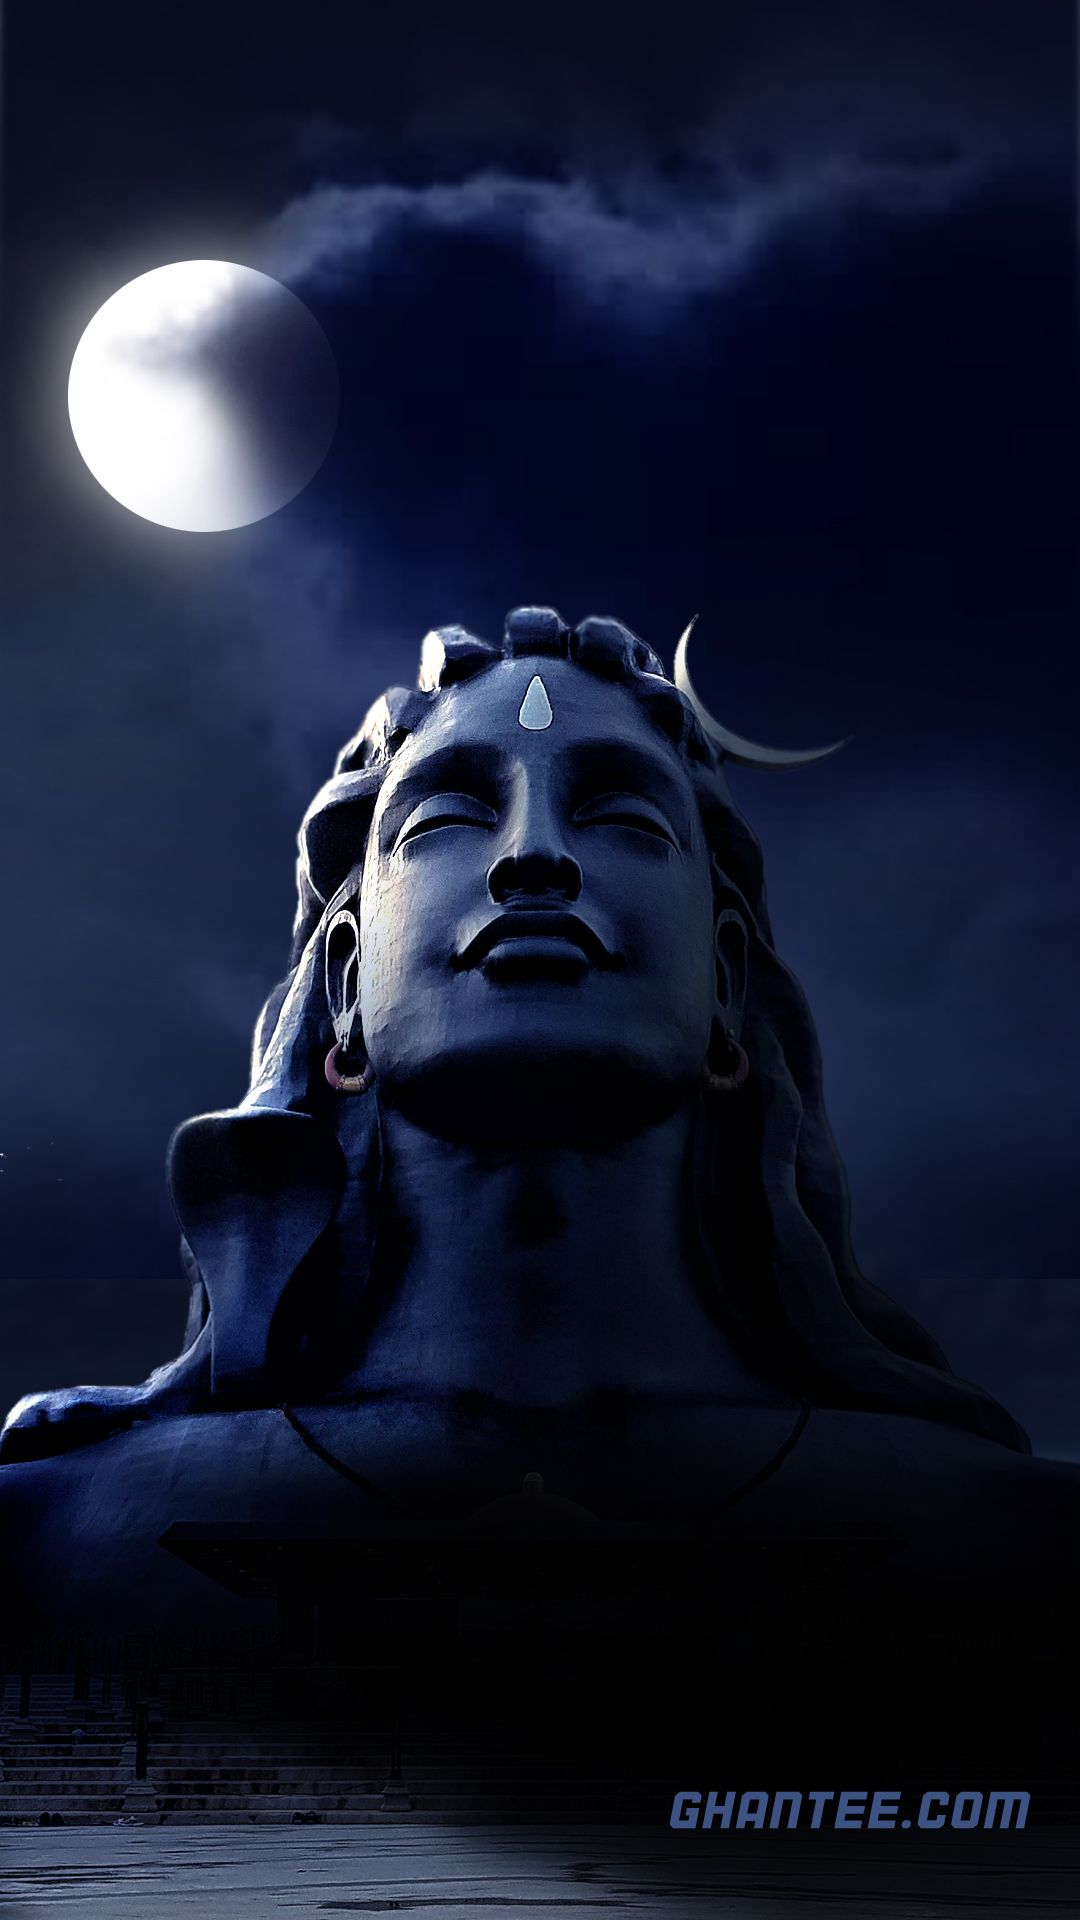 24 Best Lord Shiva Wallpapers For Mobile Devices Shiva Wallpaper Photos Of Lord Shiva Lord Shiva